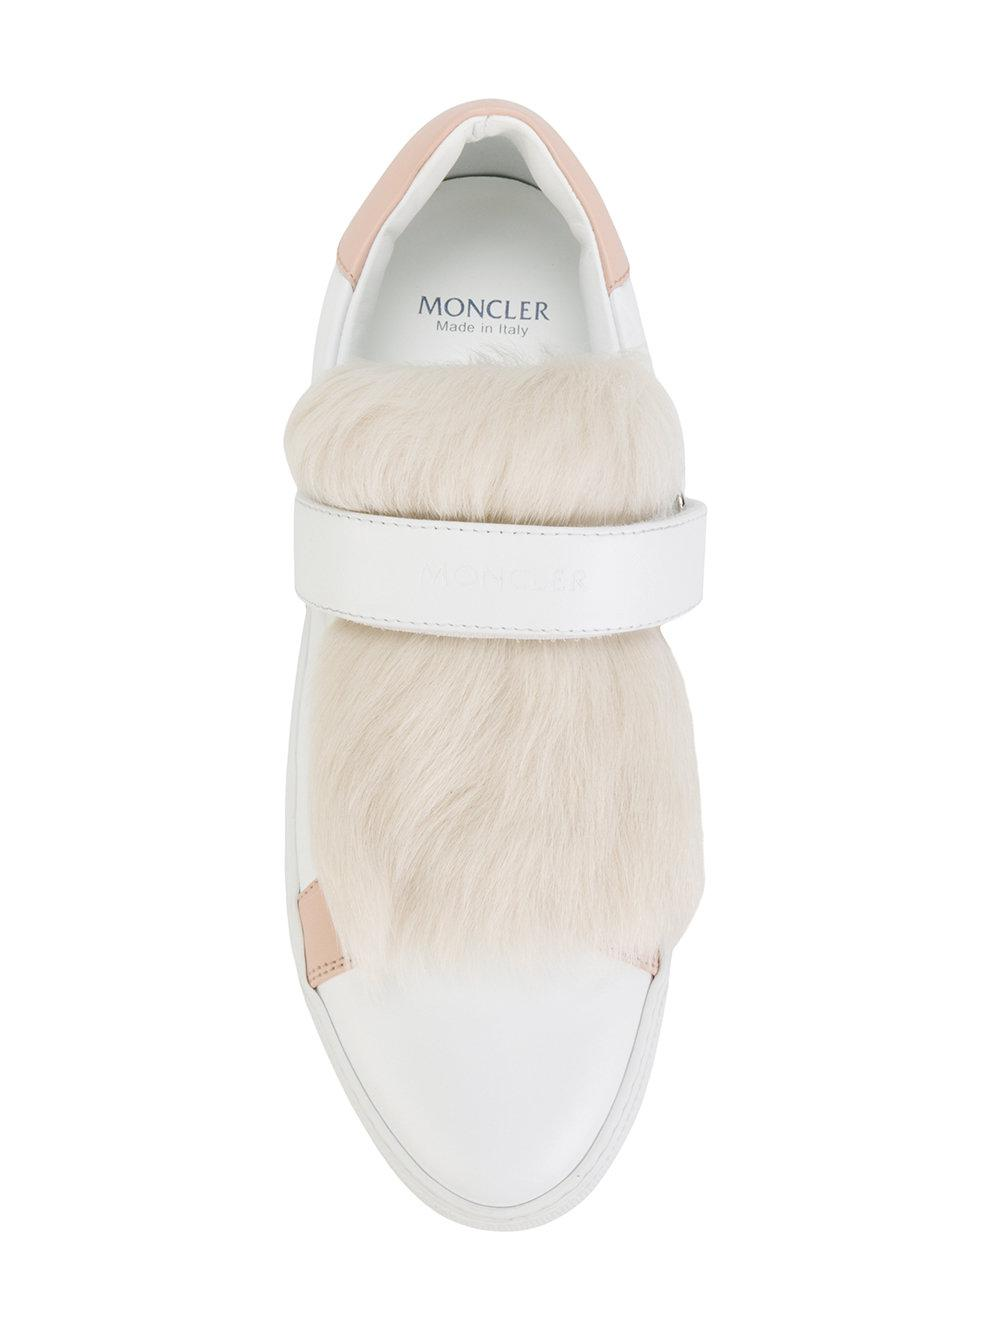 Moncler Fur Victoire Sneakers in White